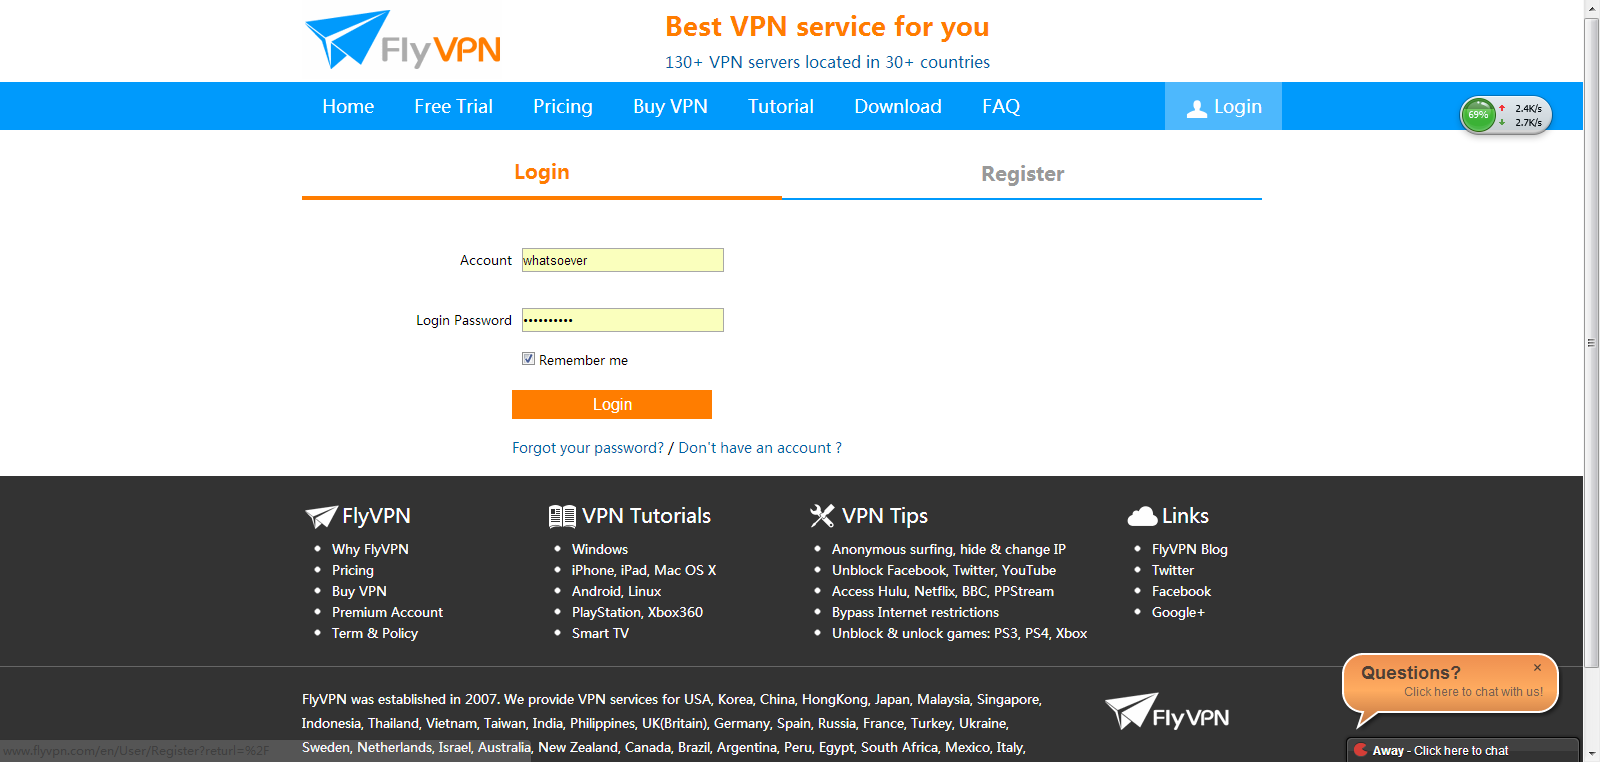 Register your own account on  FlyVPN